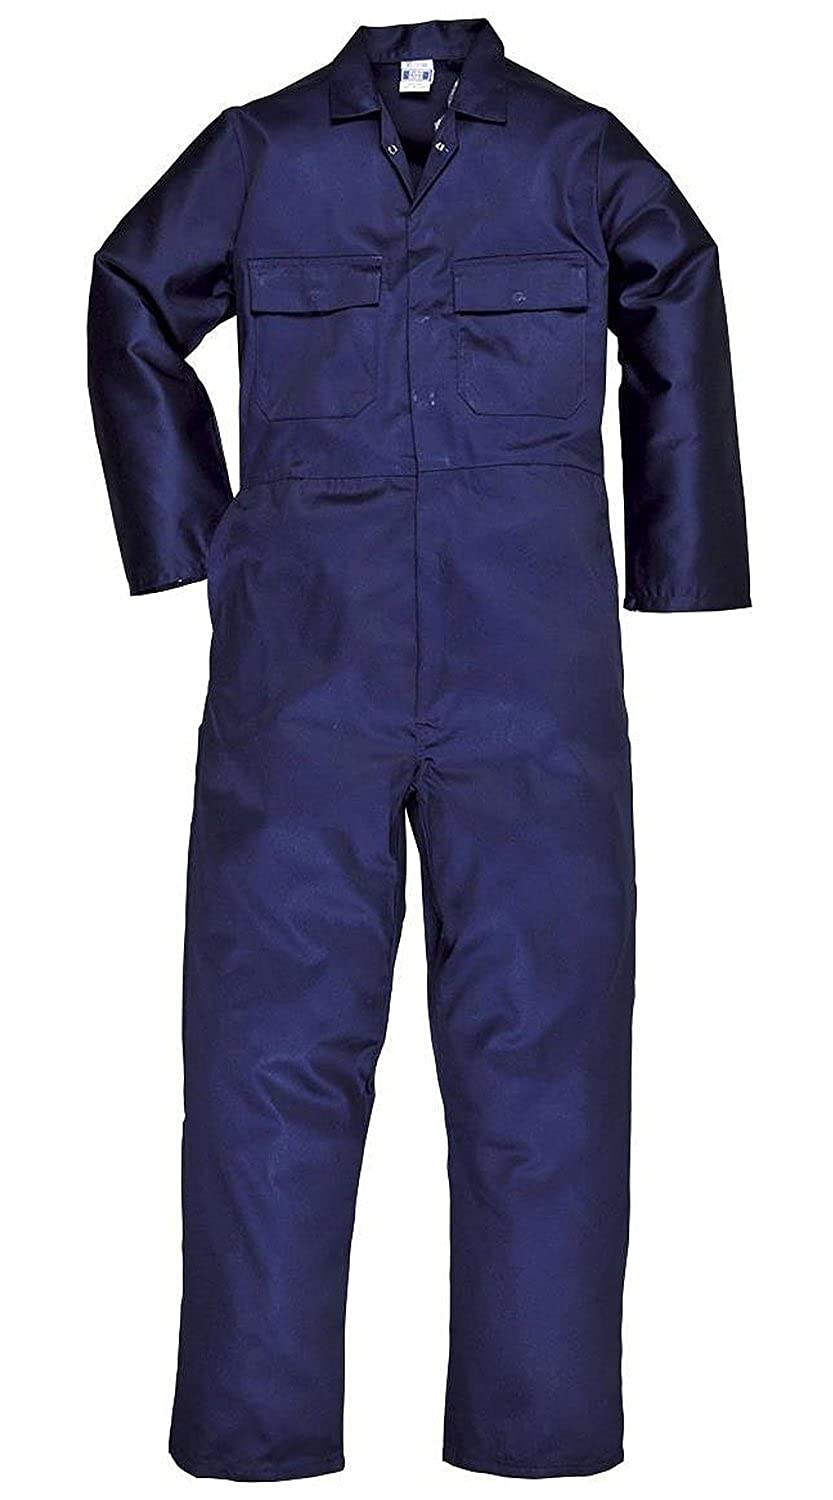 d212fff856f Super Save Direct uk Mens Boiler Suit Overall Coverall Work Boilersuit   Amazon.co.uk  Clothing